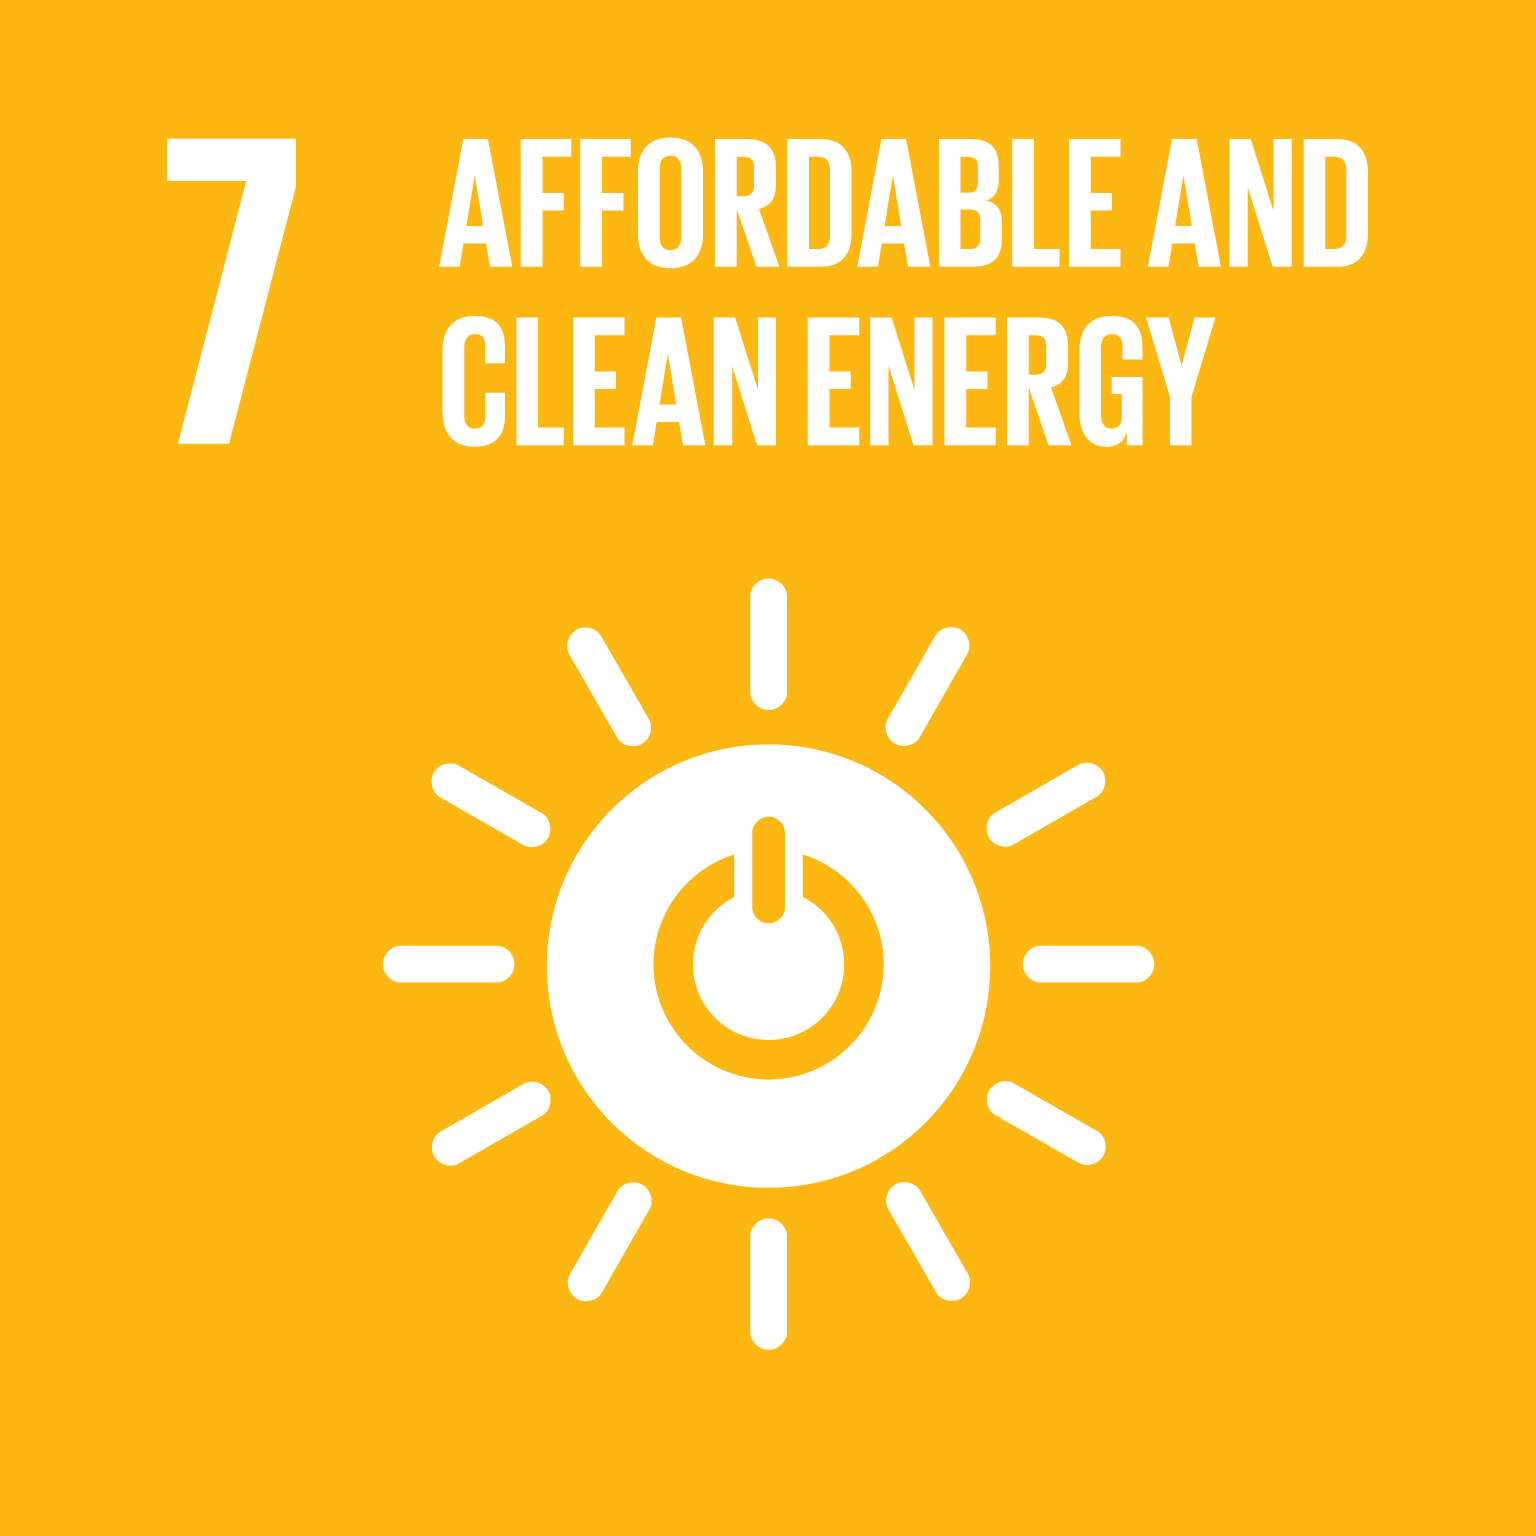 Energy E Goal 7 Sustainable Development Knowledge Platform